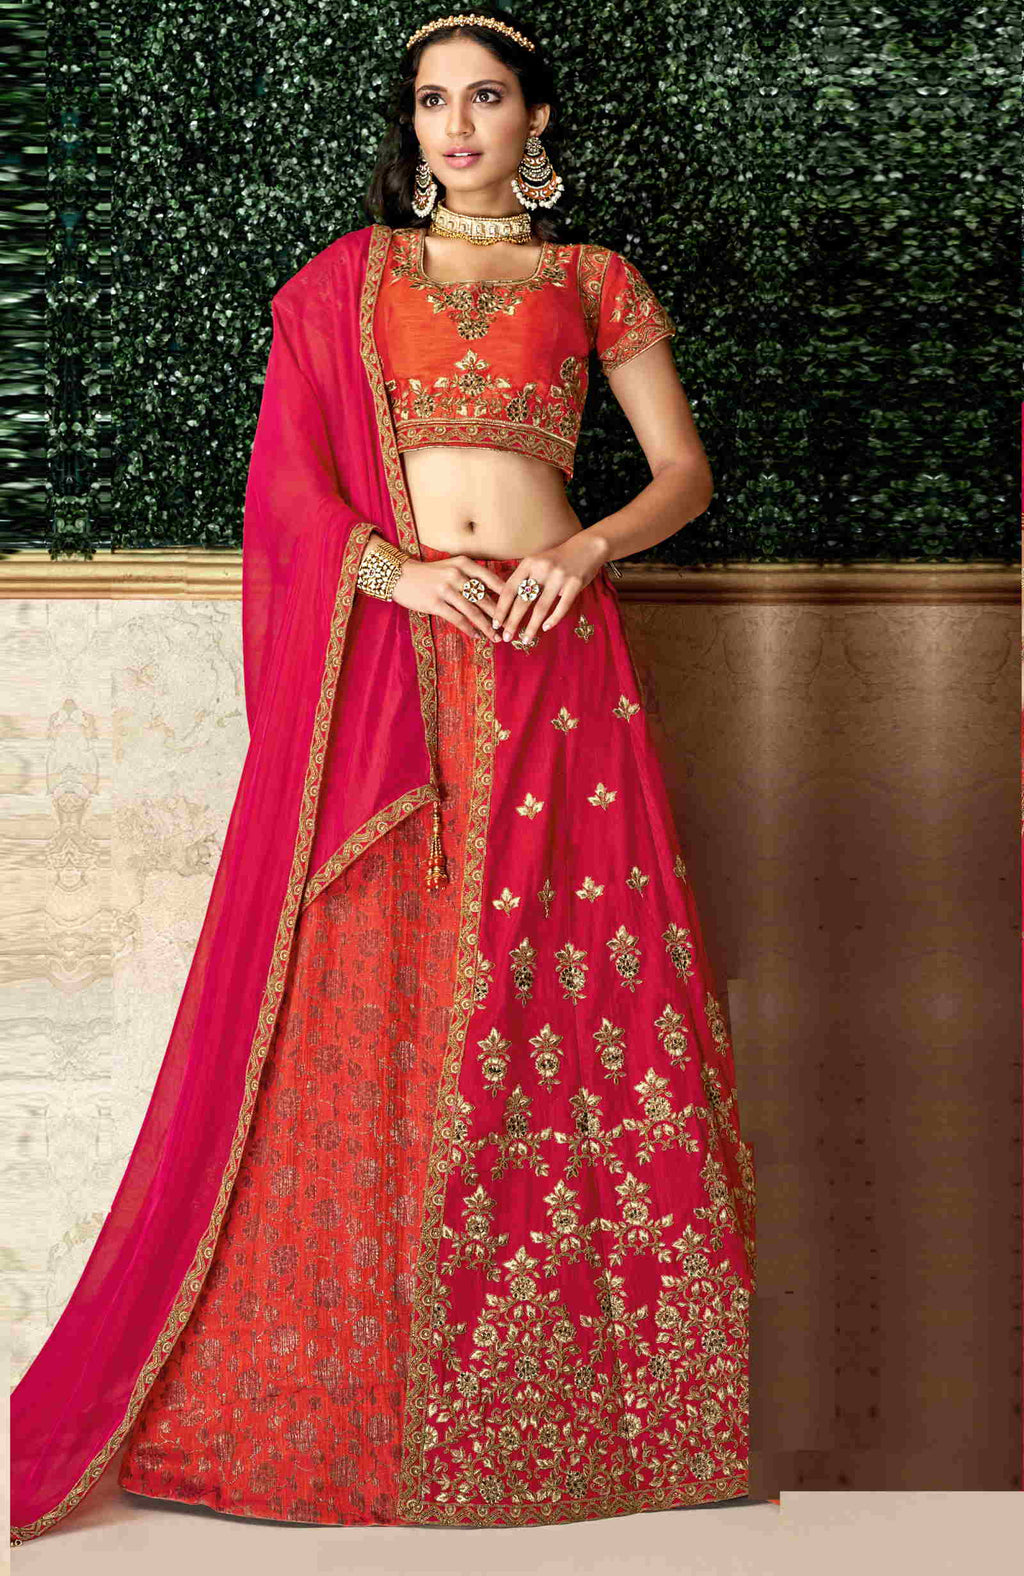 Orange & Pink Color Jacquard Silk & Dual Tone Raw Silk Pretty Marriage Functions Lehengas NYF-4905